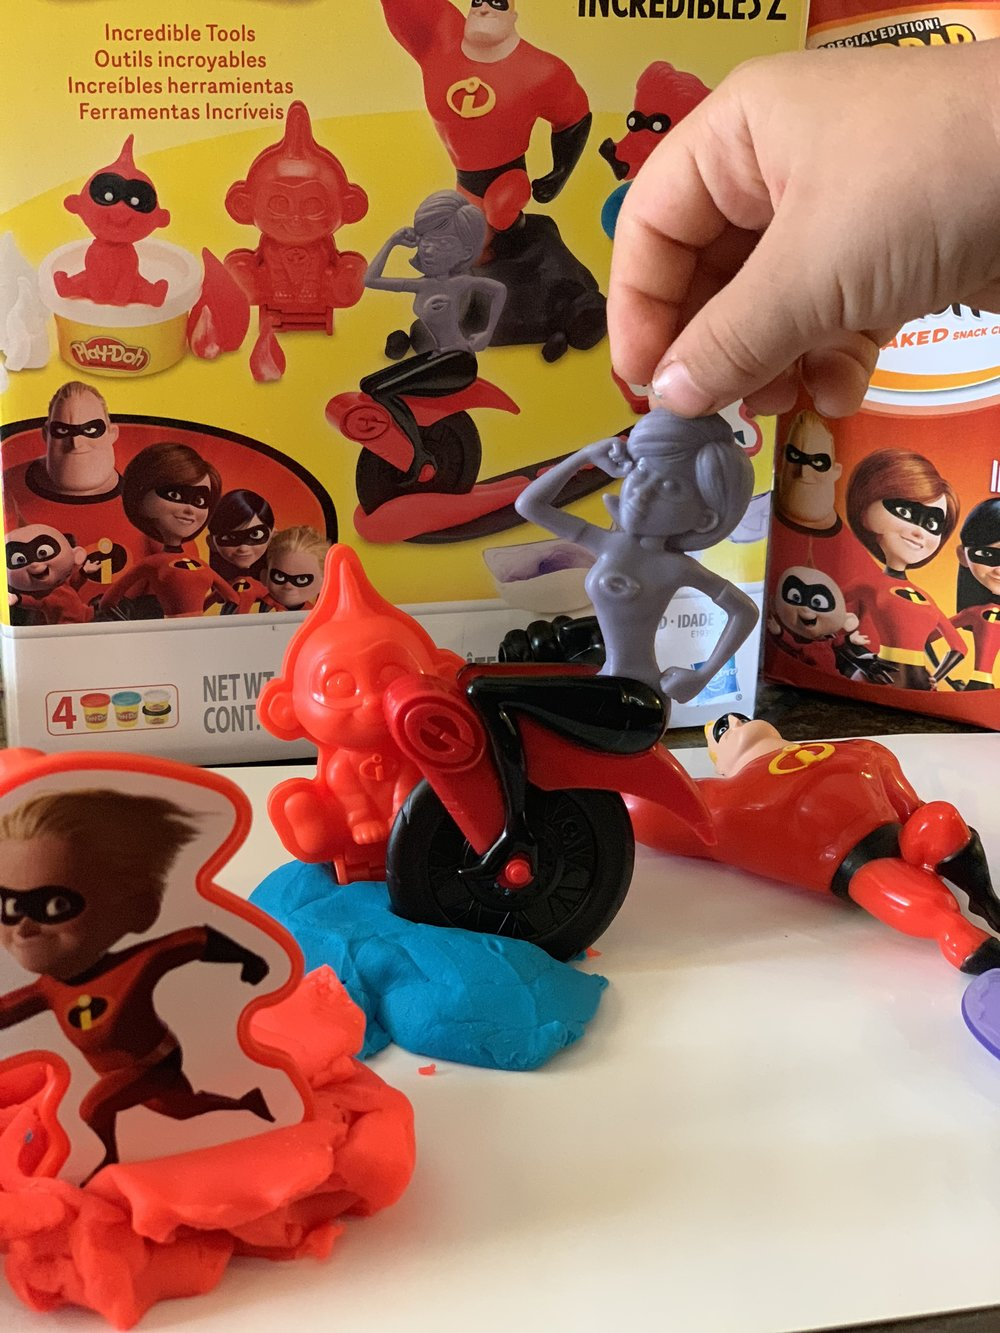 Play-Doh Incredibles 2 set